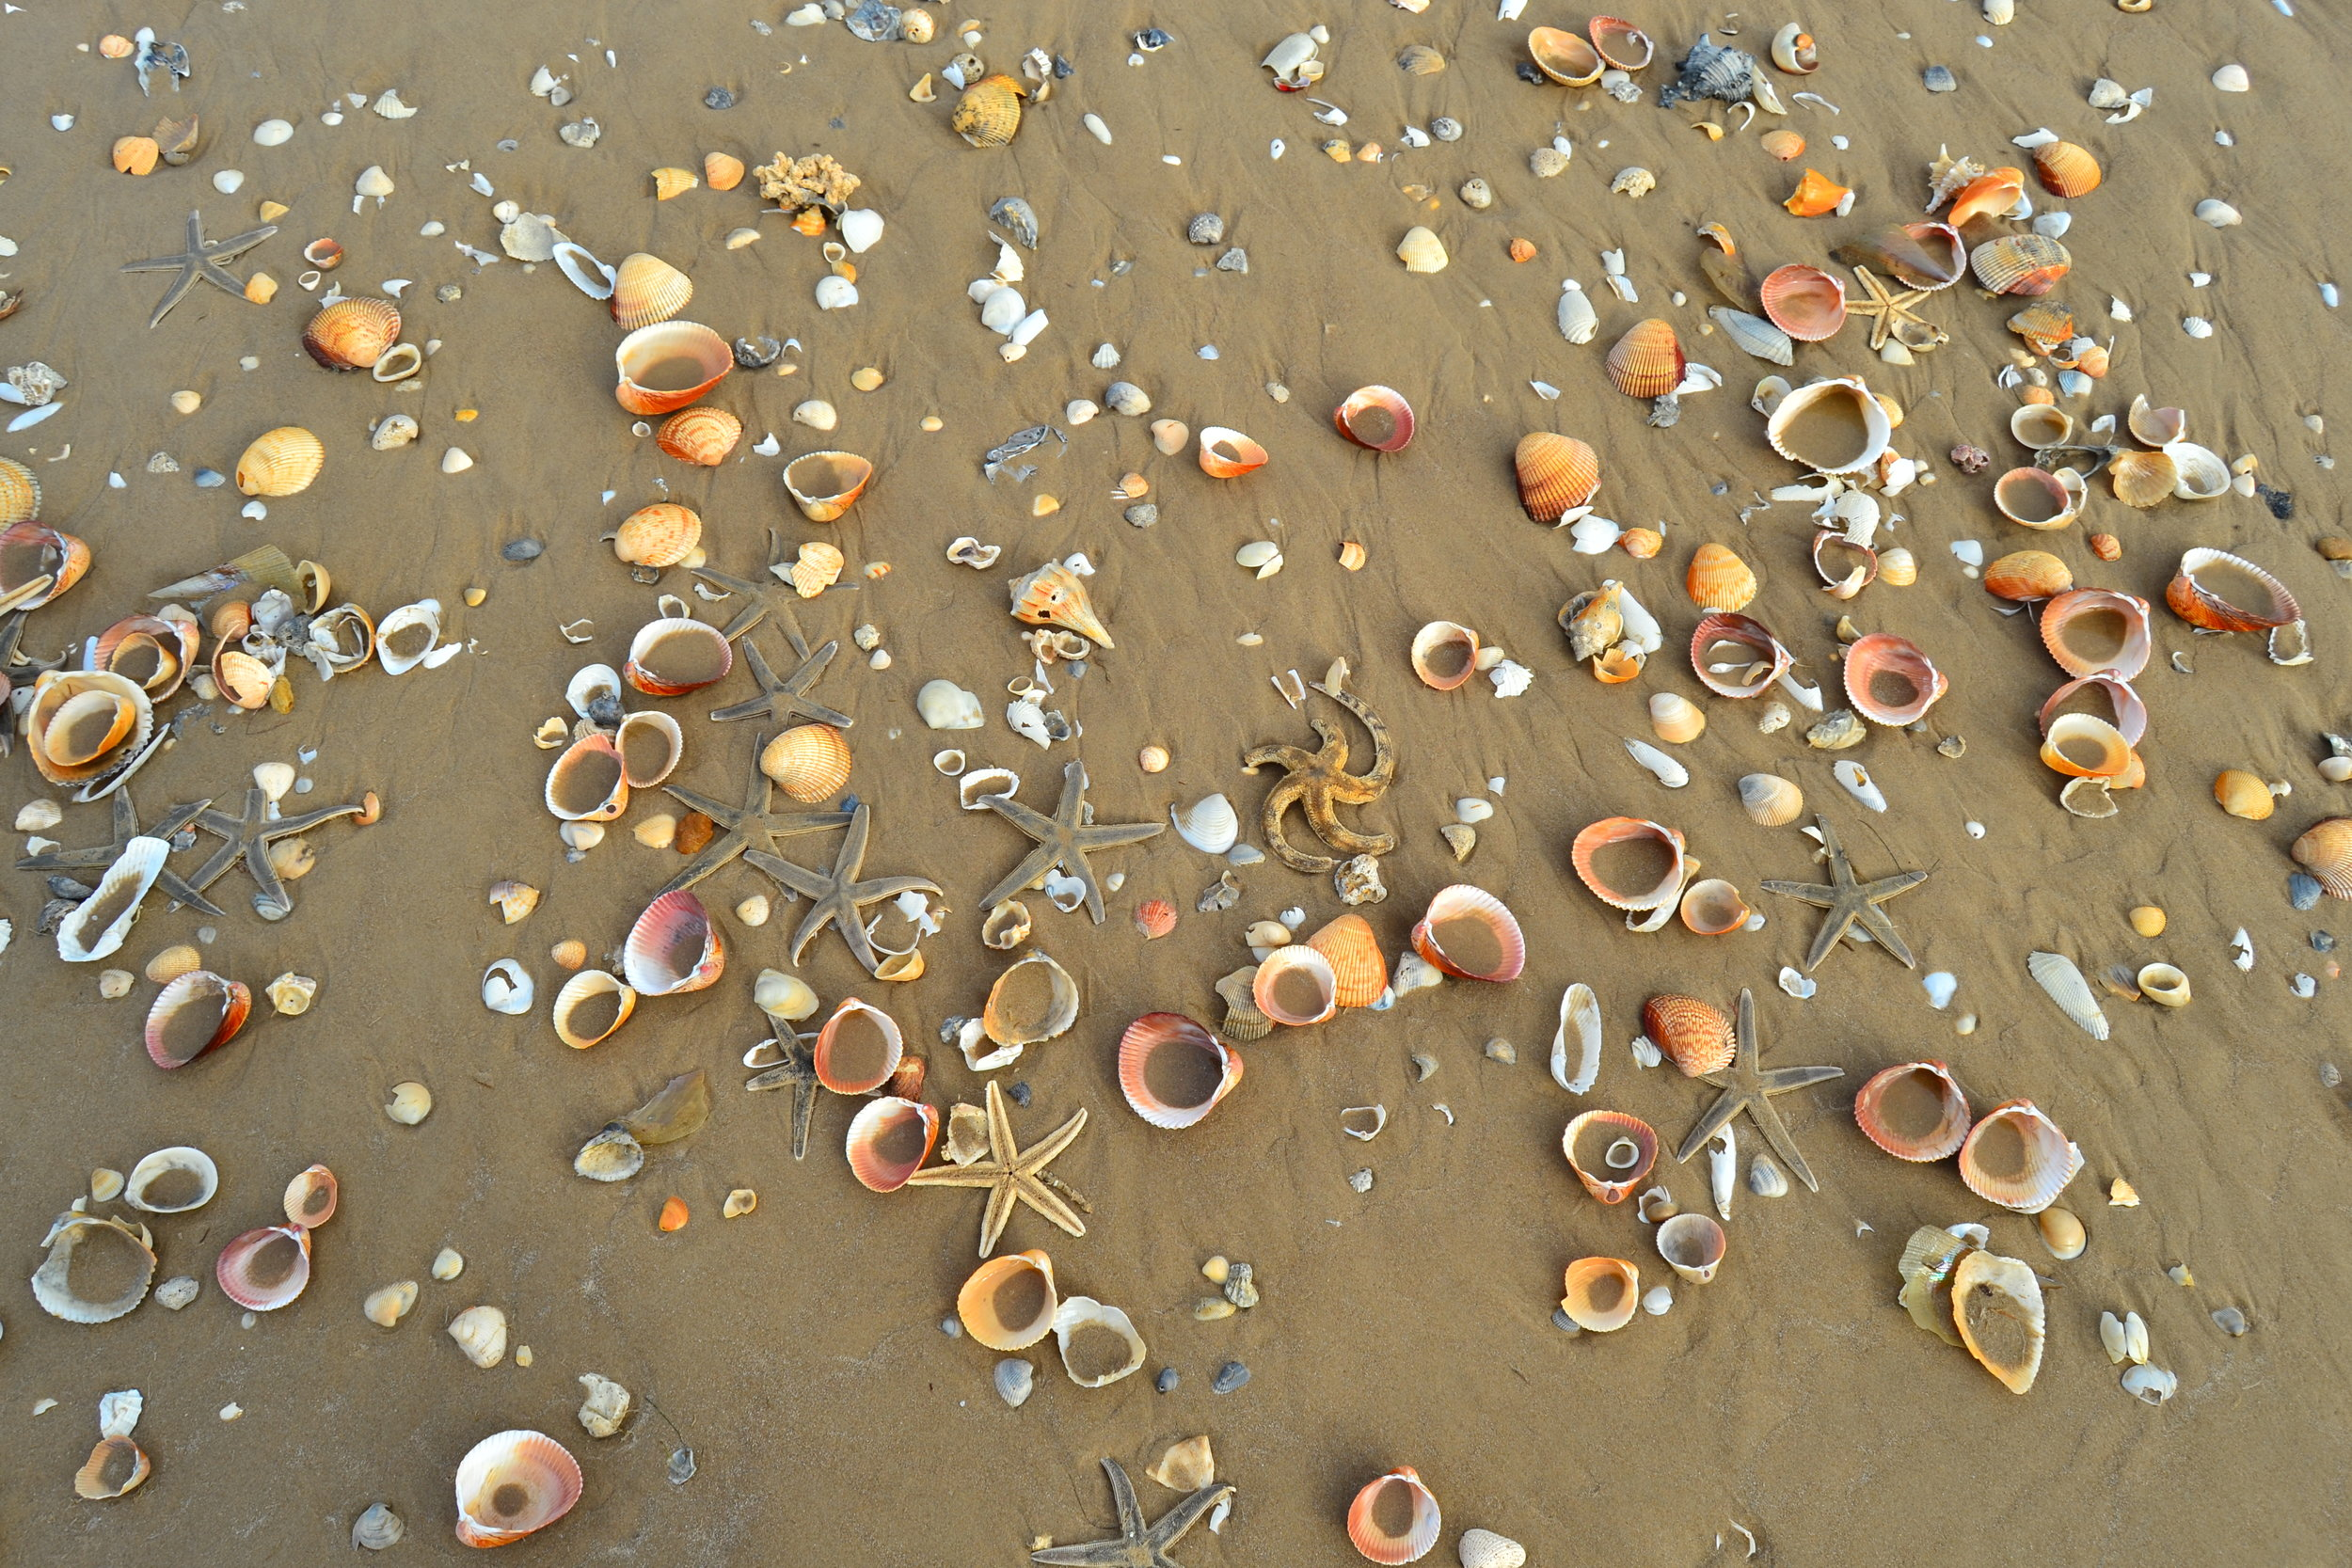 Guided Tours for Shelling - Shelling can be very productive in the winter months, and year round, if one knows where to look!